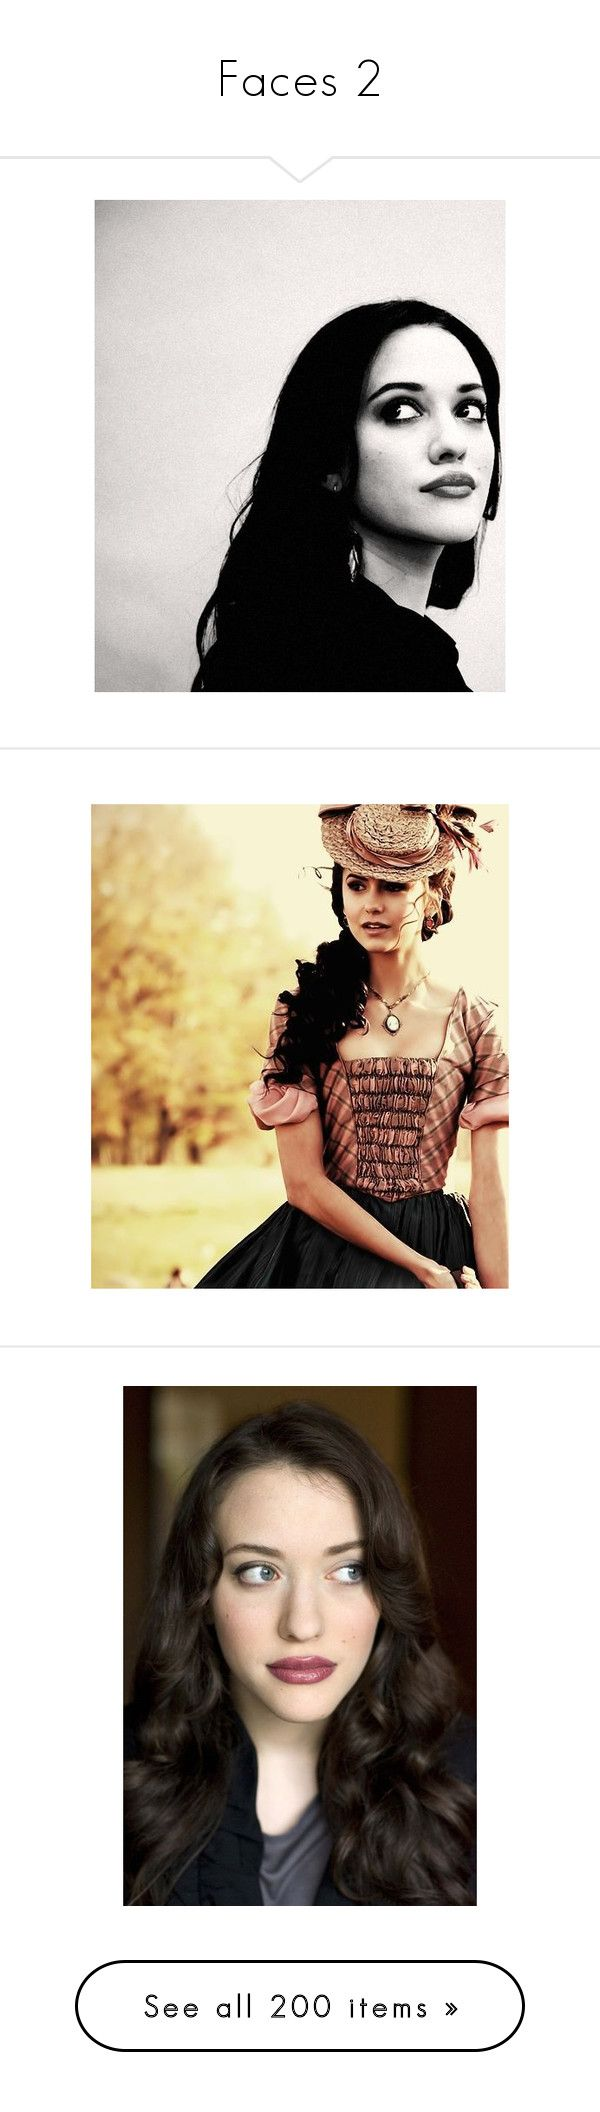 """""""Faces 2"""" by gryffandclaw ❤ liked on Polyvore featuring phrase, quotes, saying, text, holland roden, holland, people, models, pictures and teen wolf"""